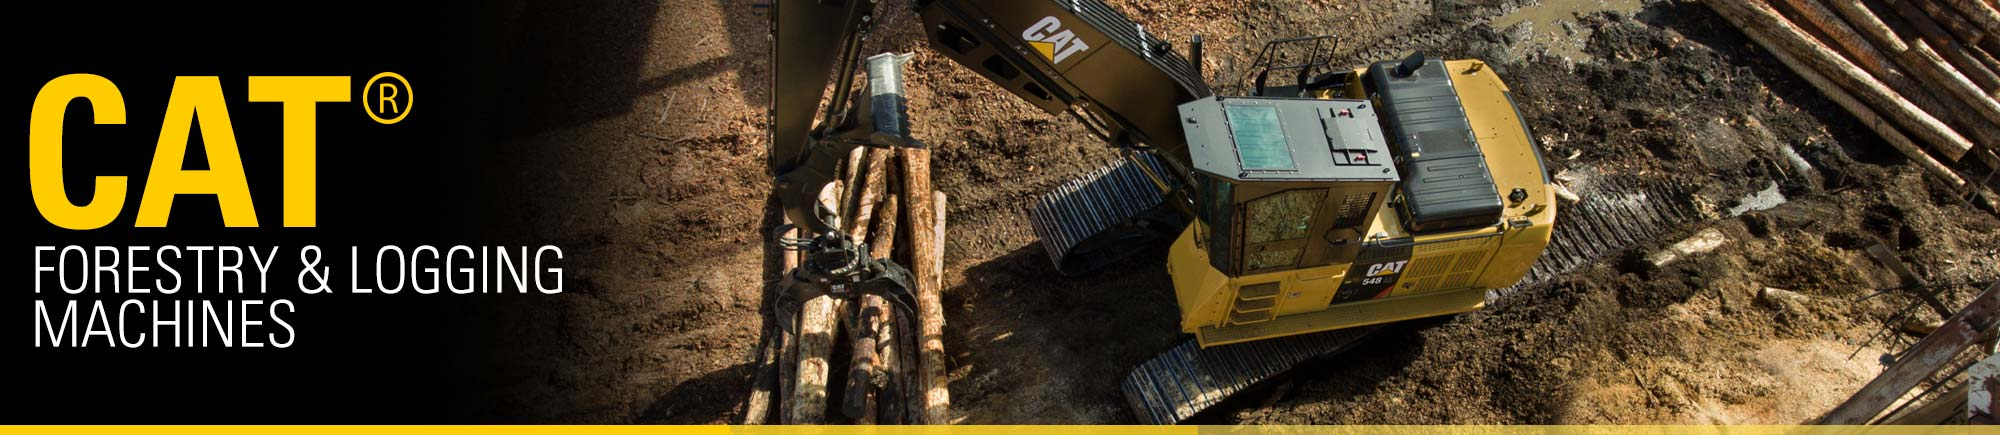 Cat Forestry and Logging Machines